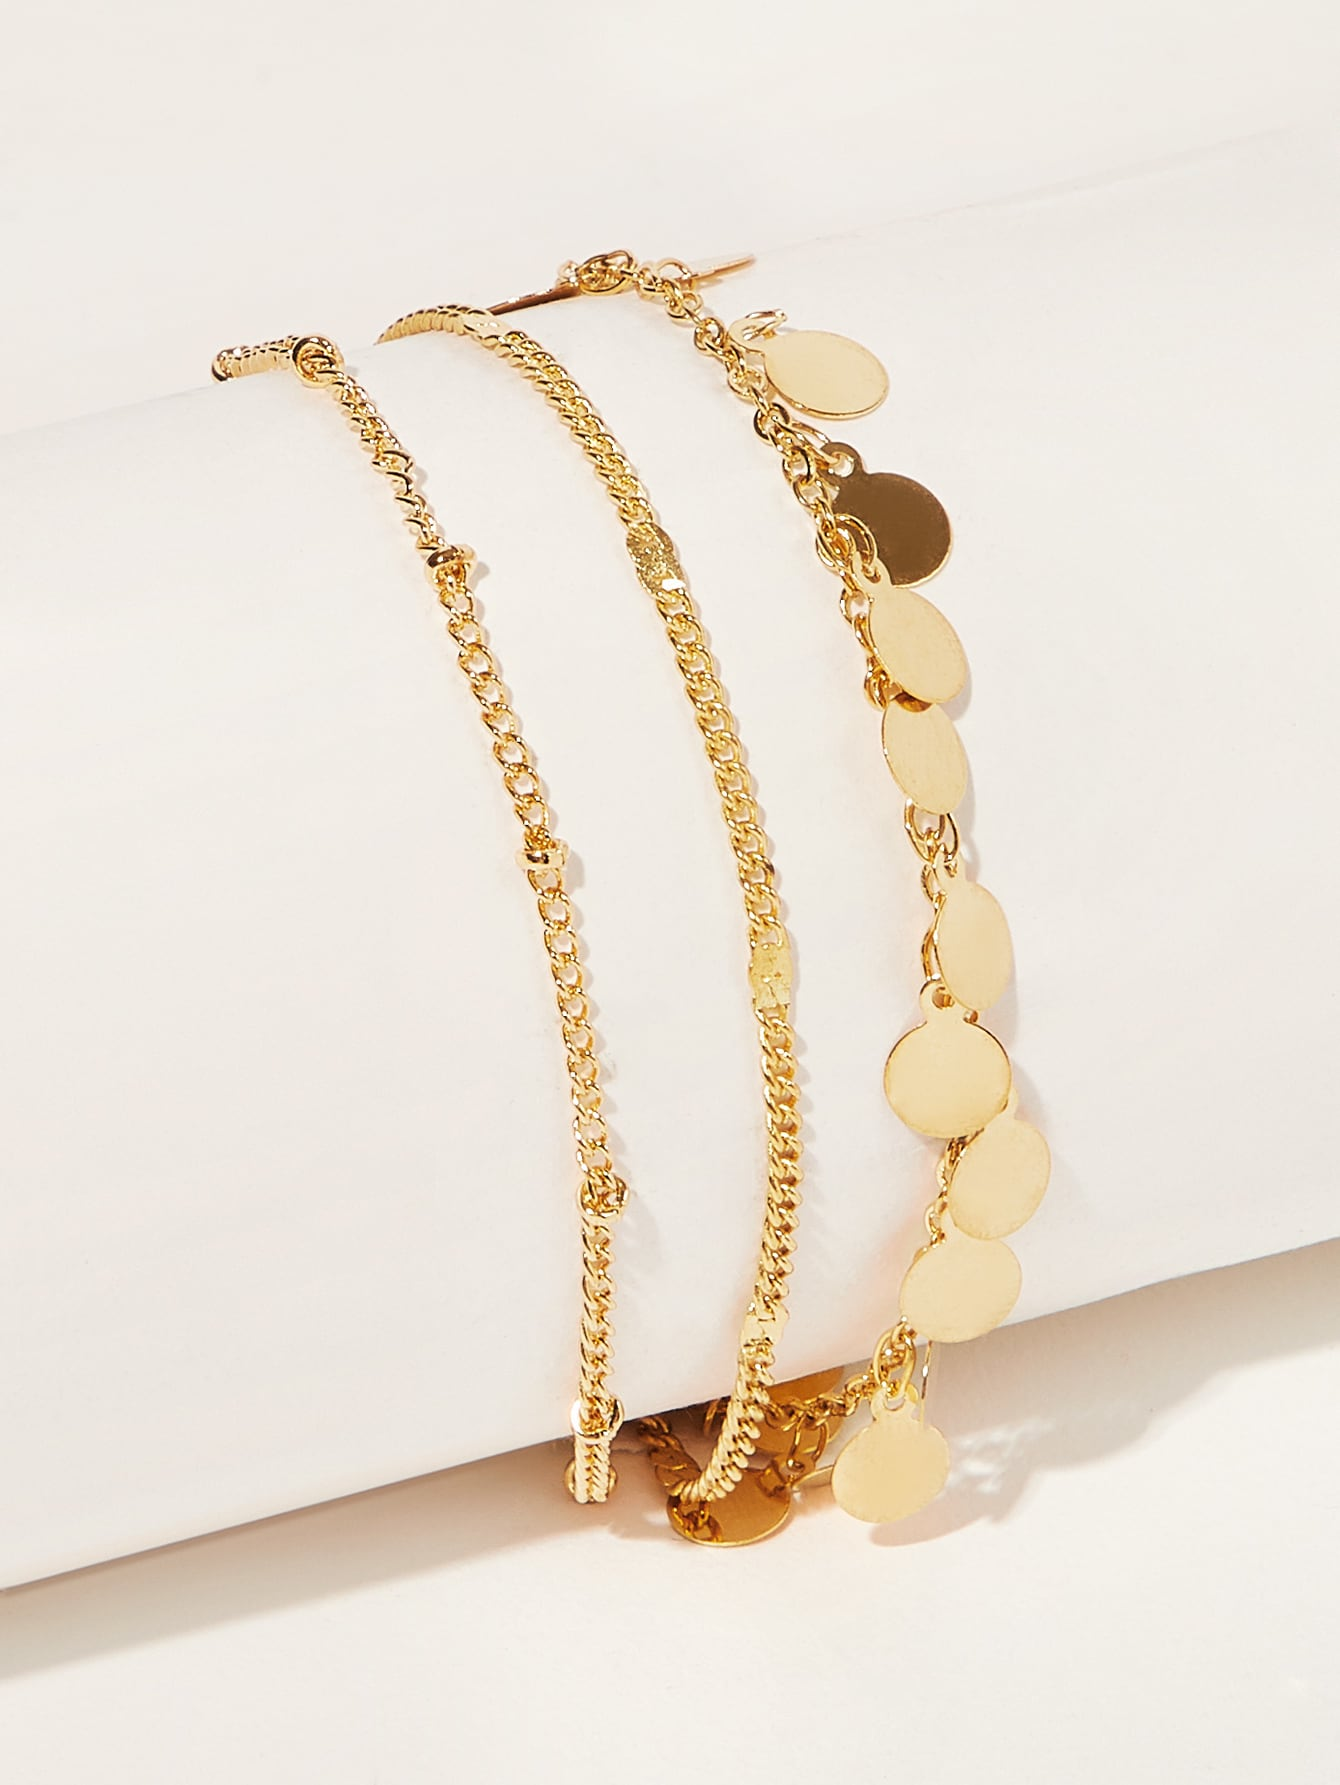 Disc Detail Multilayered Chain Anklet 1pc